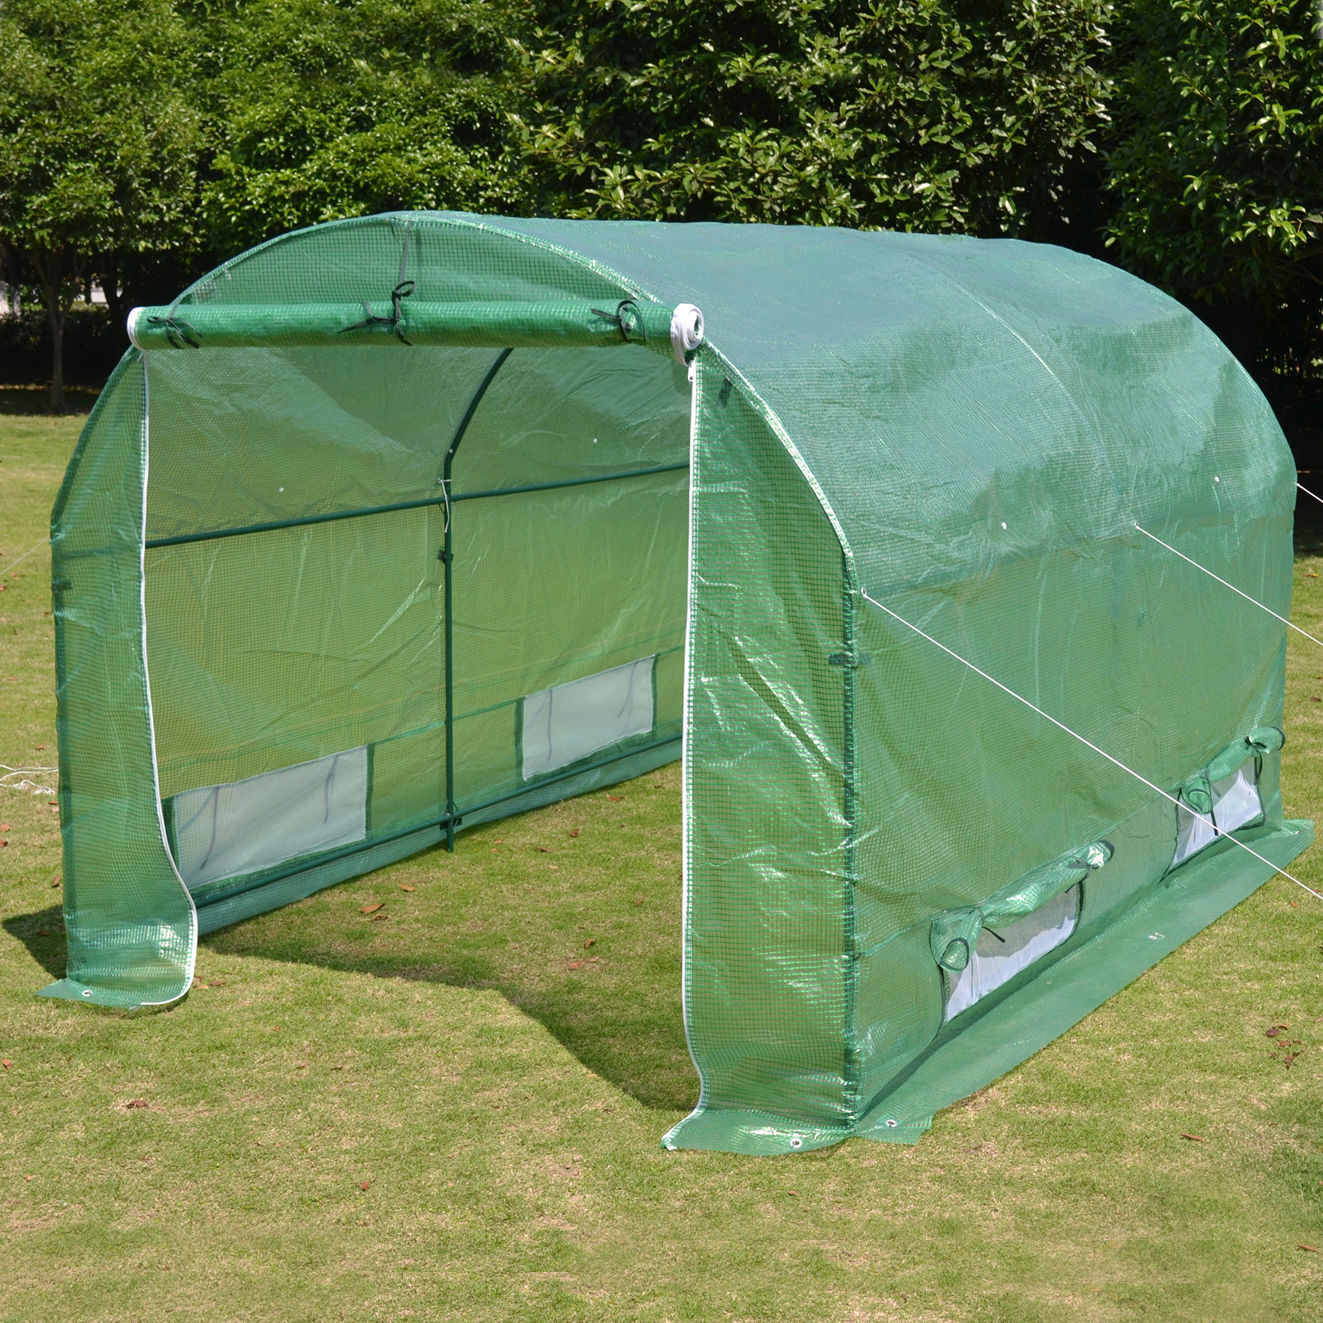 10 x 7 x 6 Portable Greenhouse Canopy & x 7 x 6 Portable Greenhouse Canopy